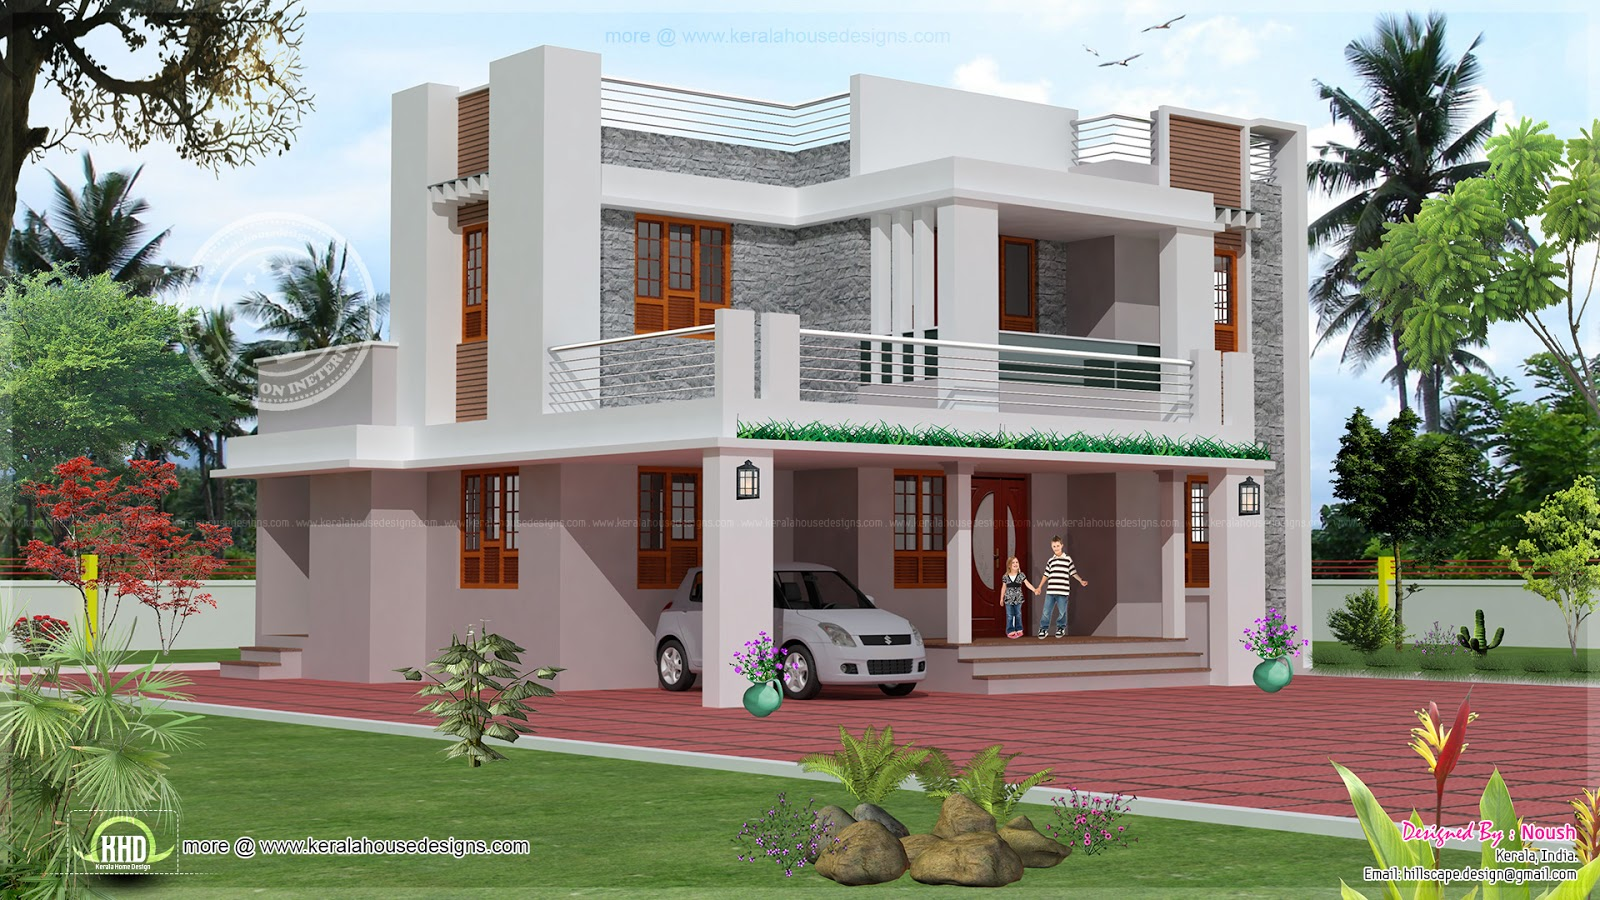 4 bedroom 2 story house exterior design home kerala plans for Exterior home design program